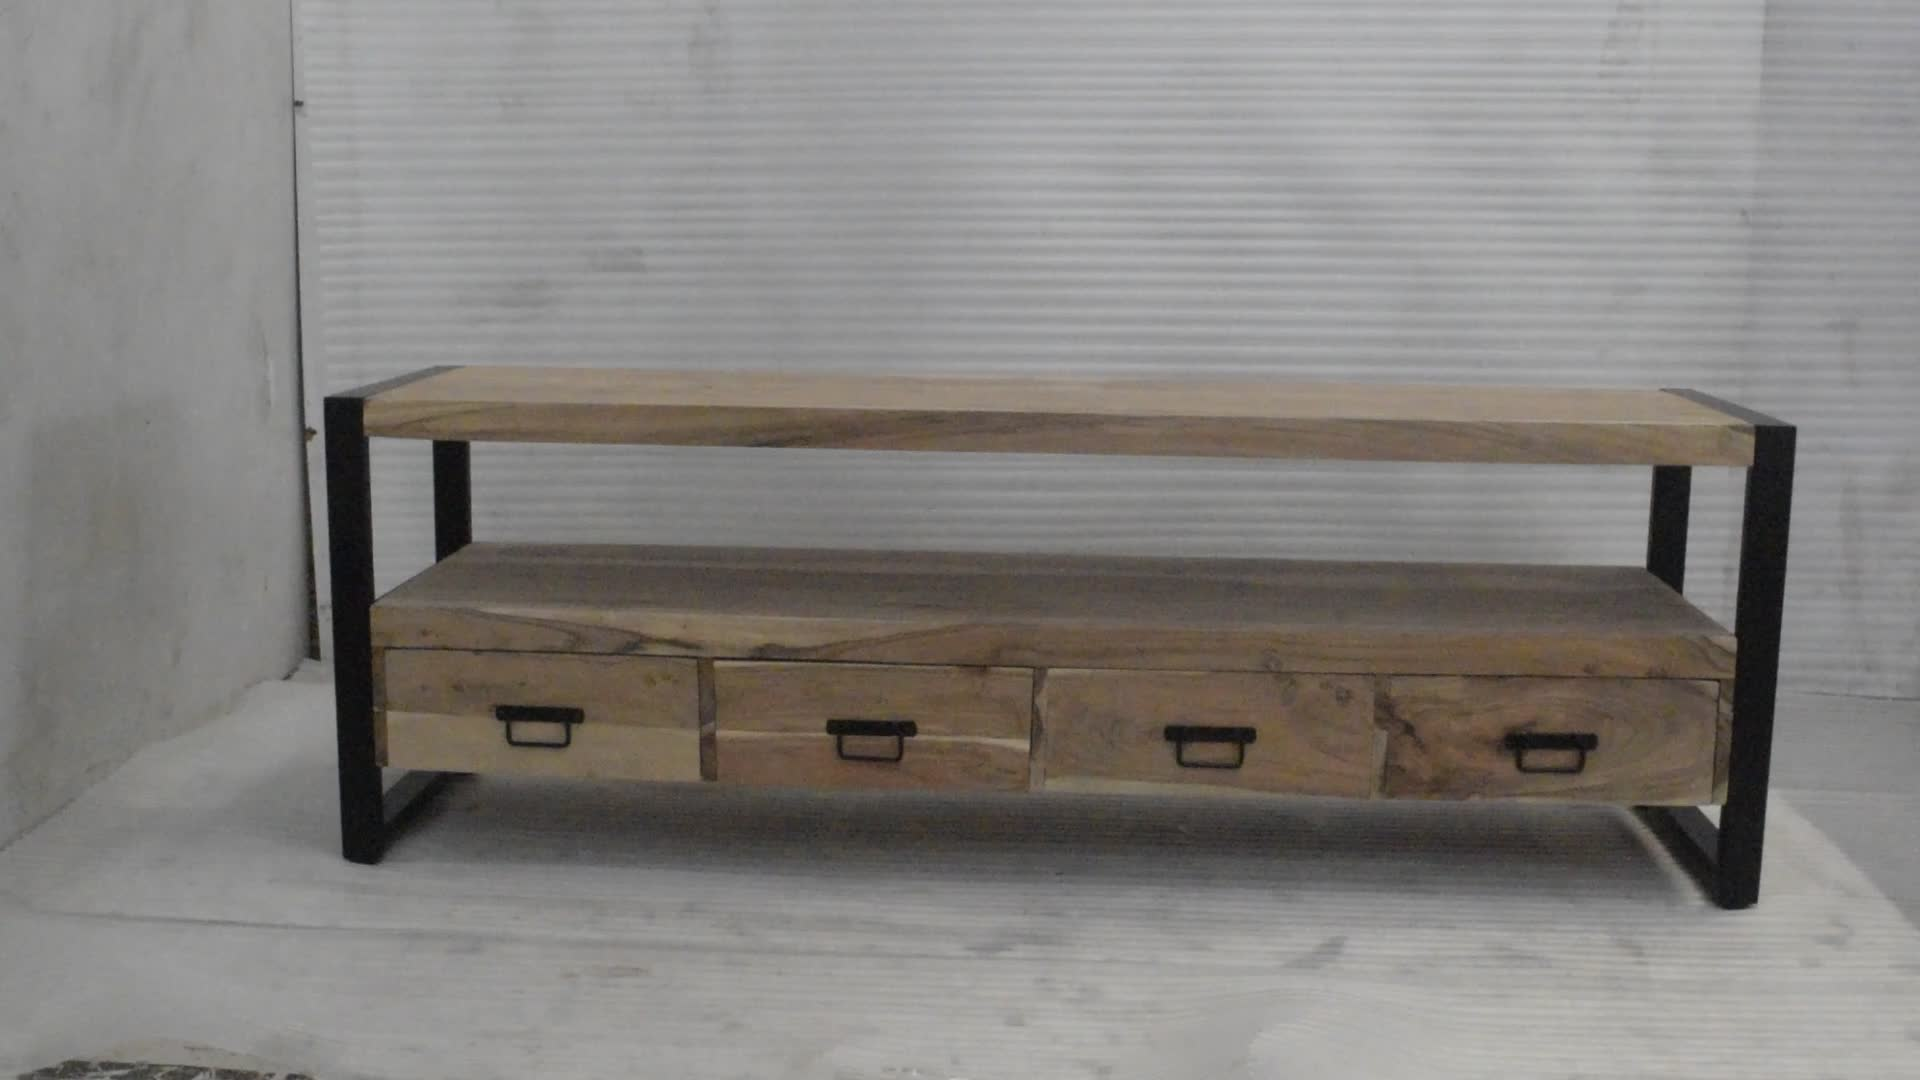 Solid Wood Industrial Furniture: You Can Sleep With Luxury And Style